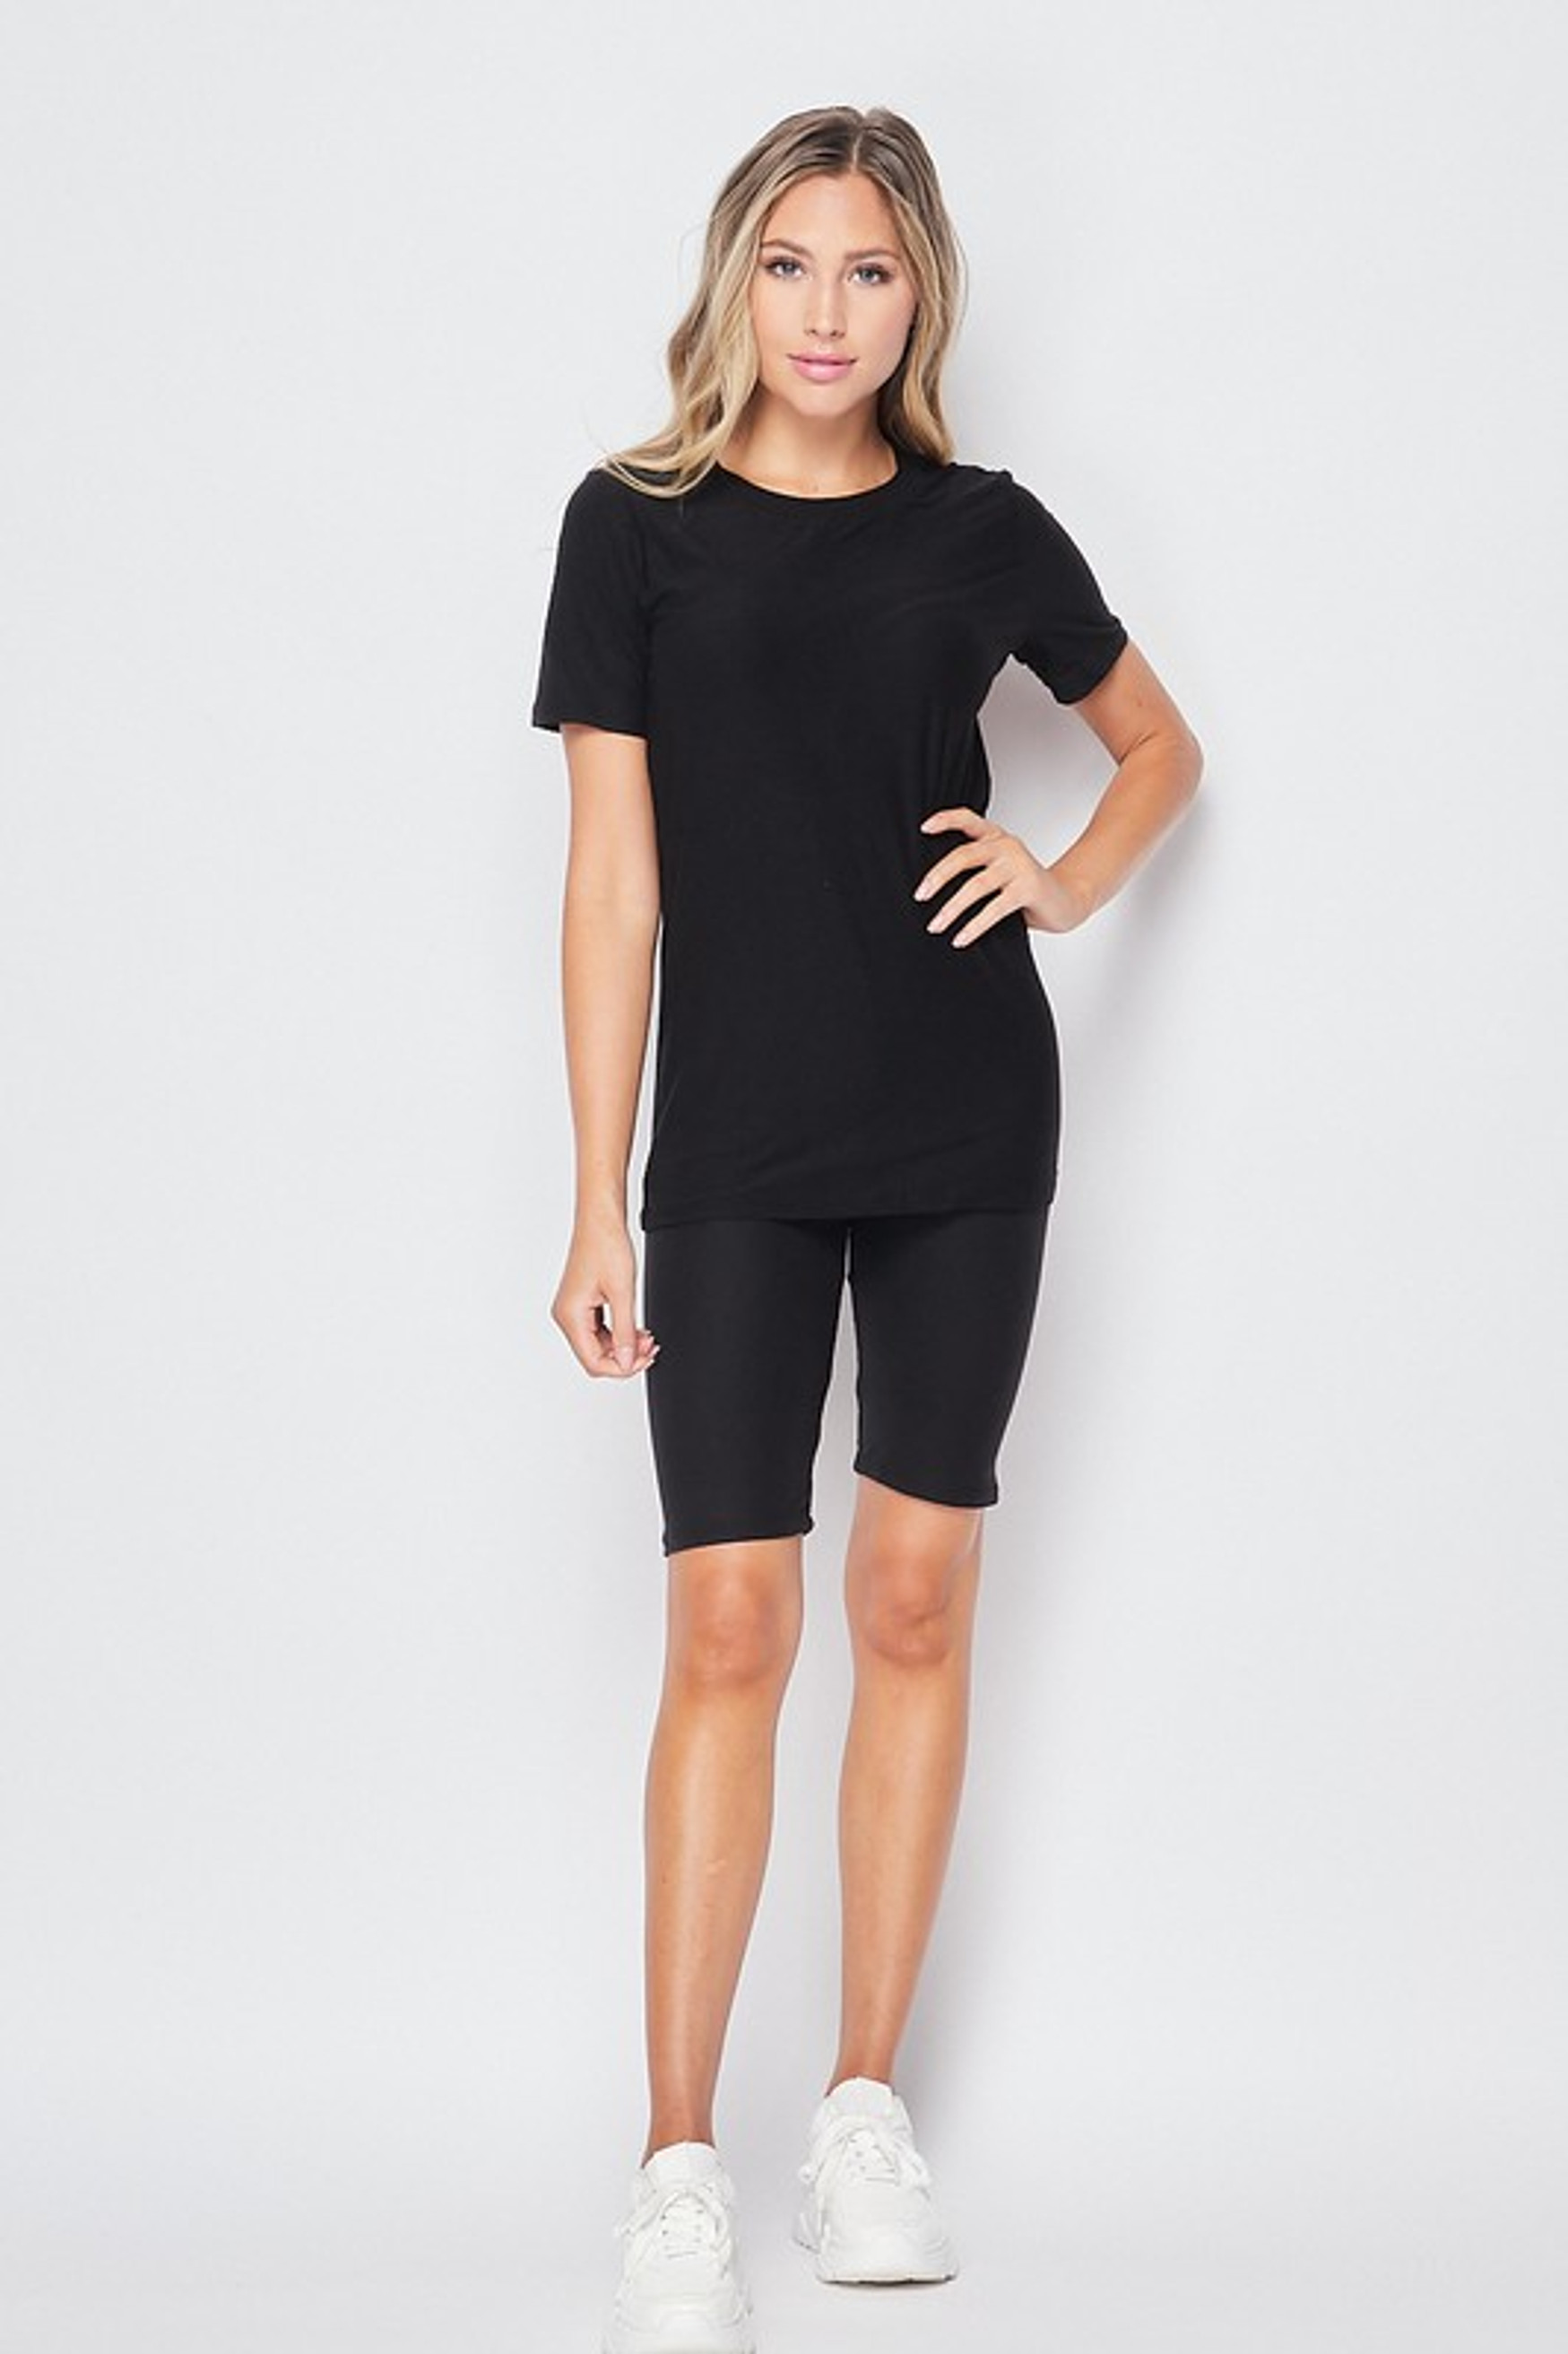 Front of Black Buttery Soft Basic Solid Biker Shorts and T-Shirt Set